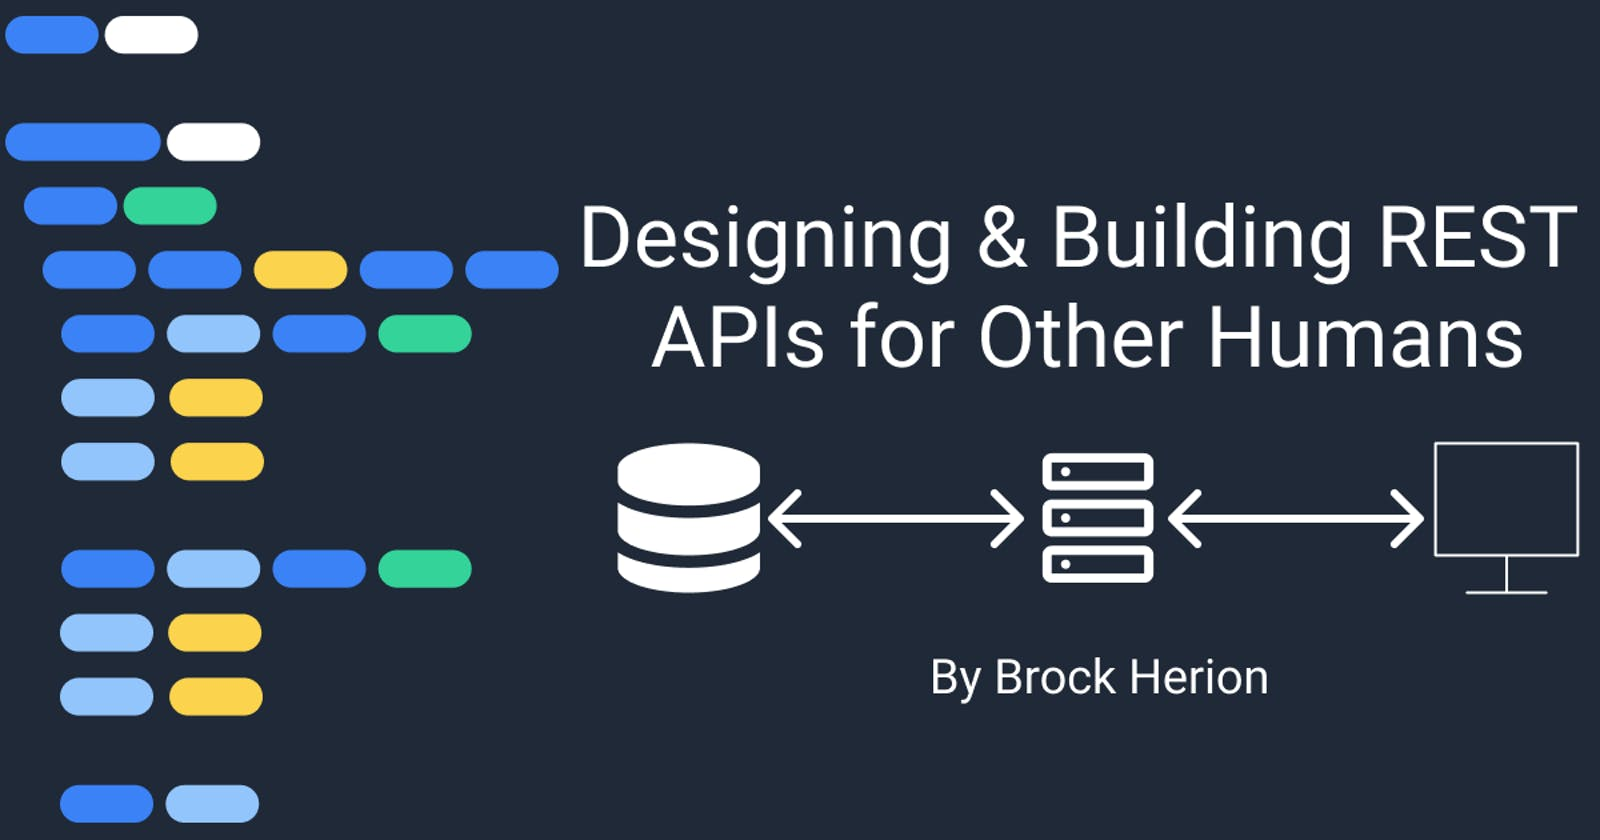 Designing and Building REST APIs for Other Humans